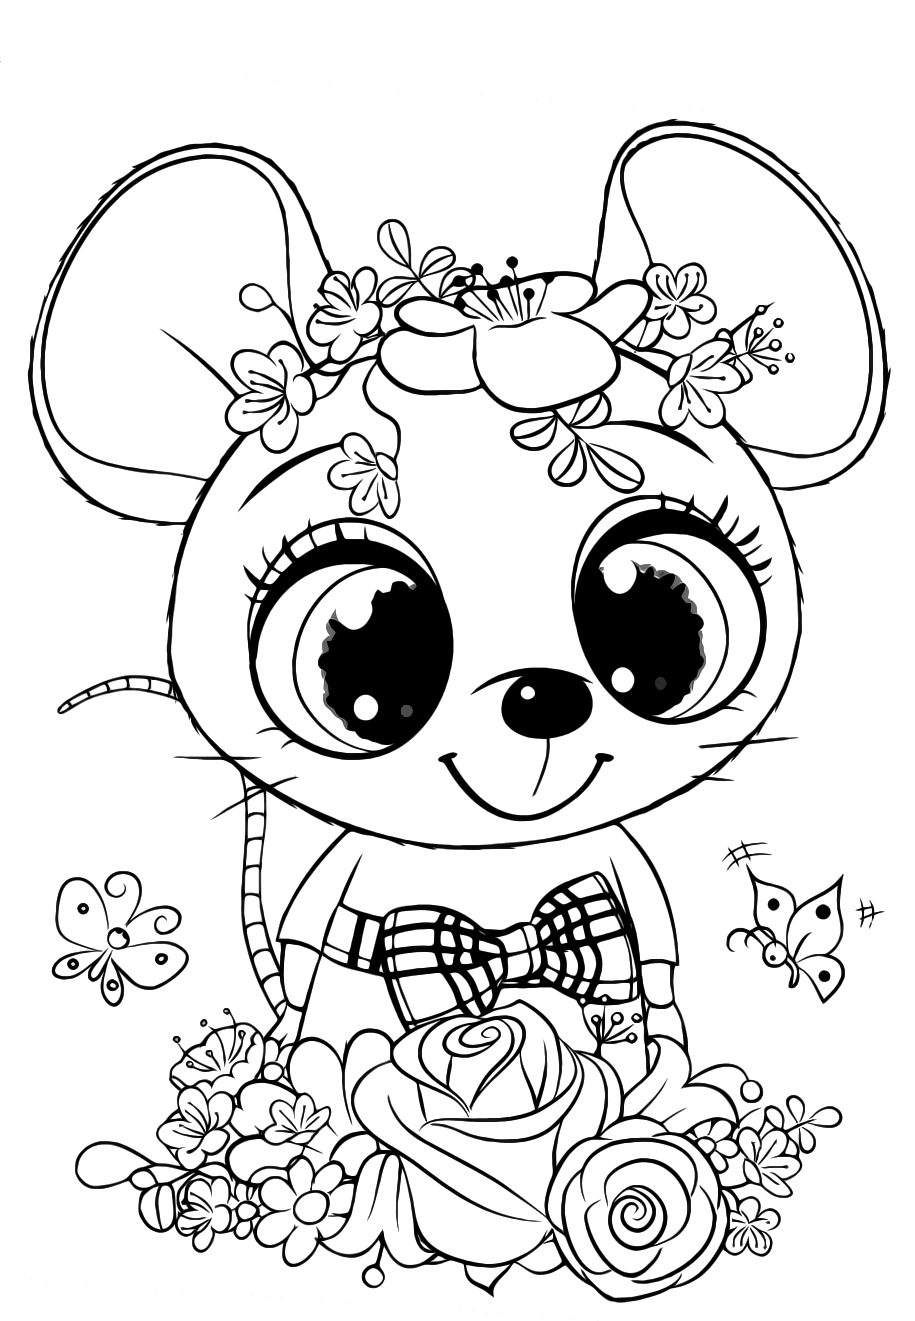 Cute Mouse with flowers